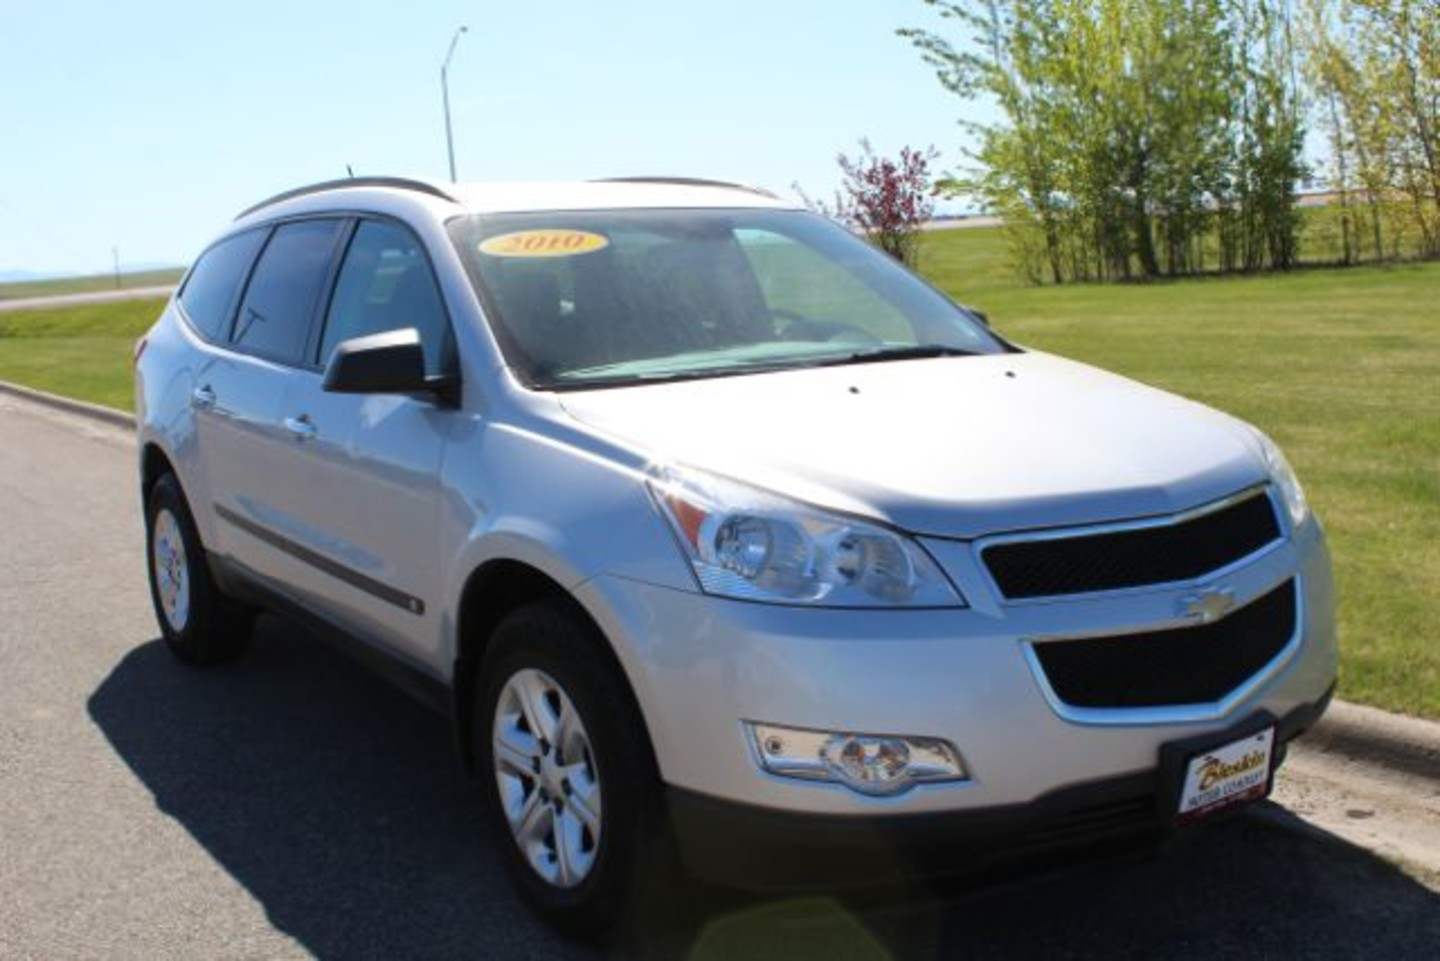 2010 Chevrolet Traverse Ls City Mt Bleskin Motor Company